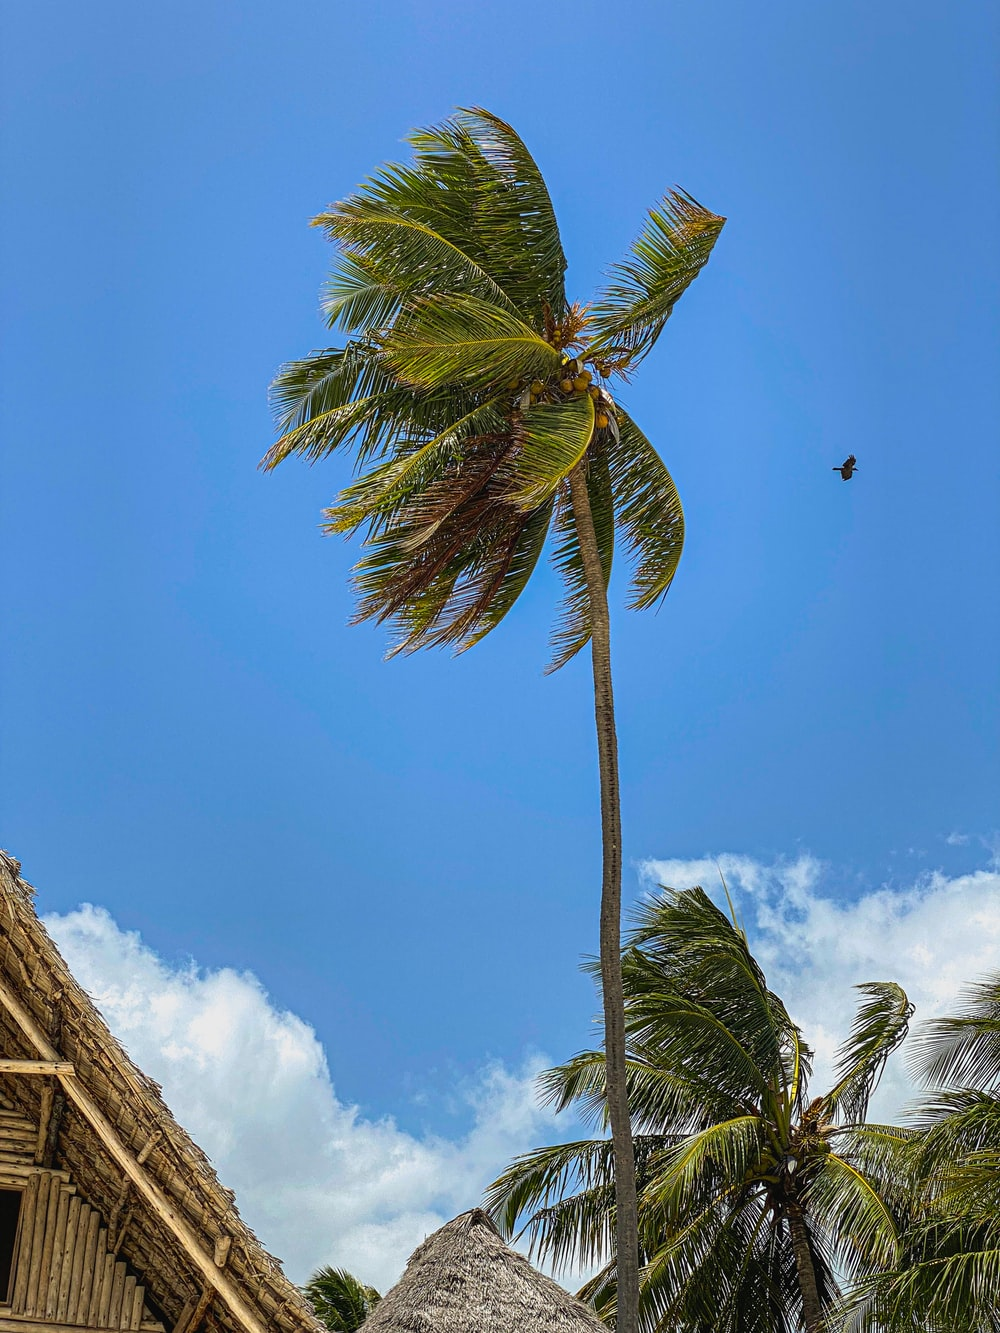 low angle photography of palm tree under blue sky during daytime